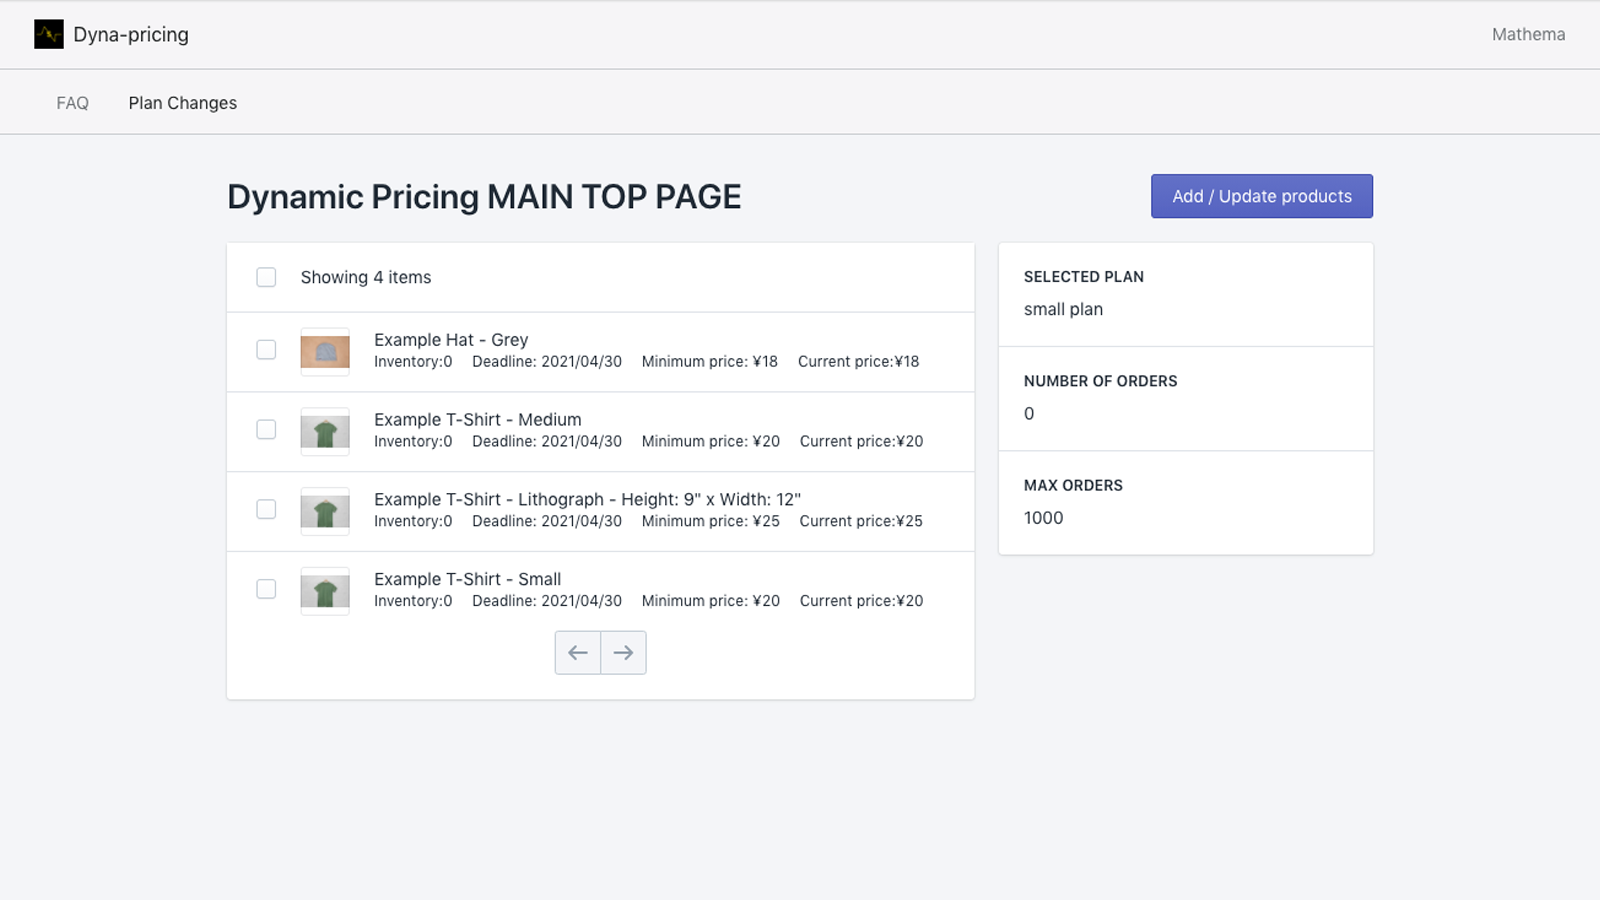 You can track the orders you get and the products you set.